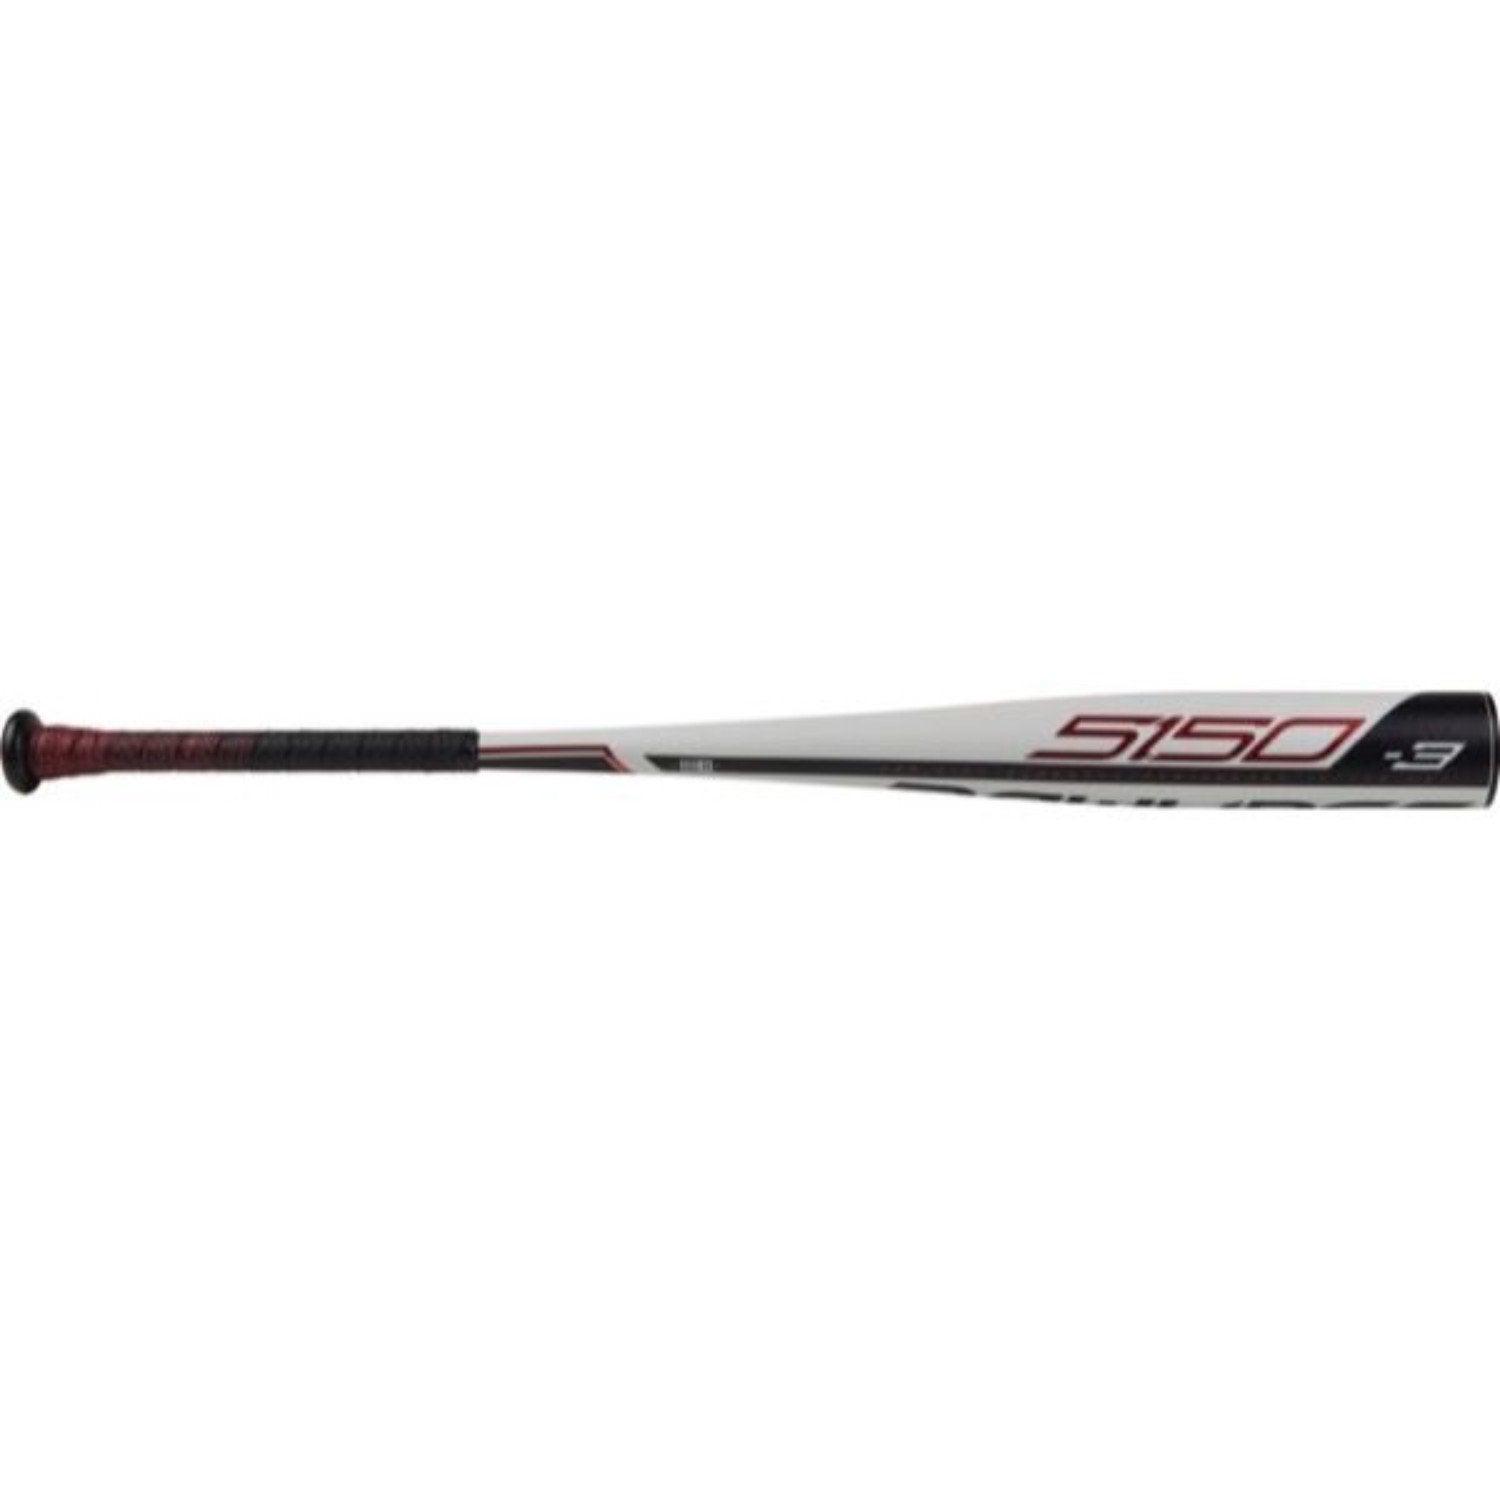 "Rawlings 5150 BBCOR Baseball Bat -3 33"" 30oz"